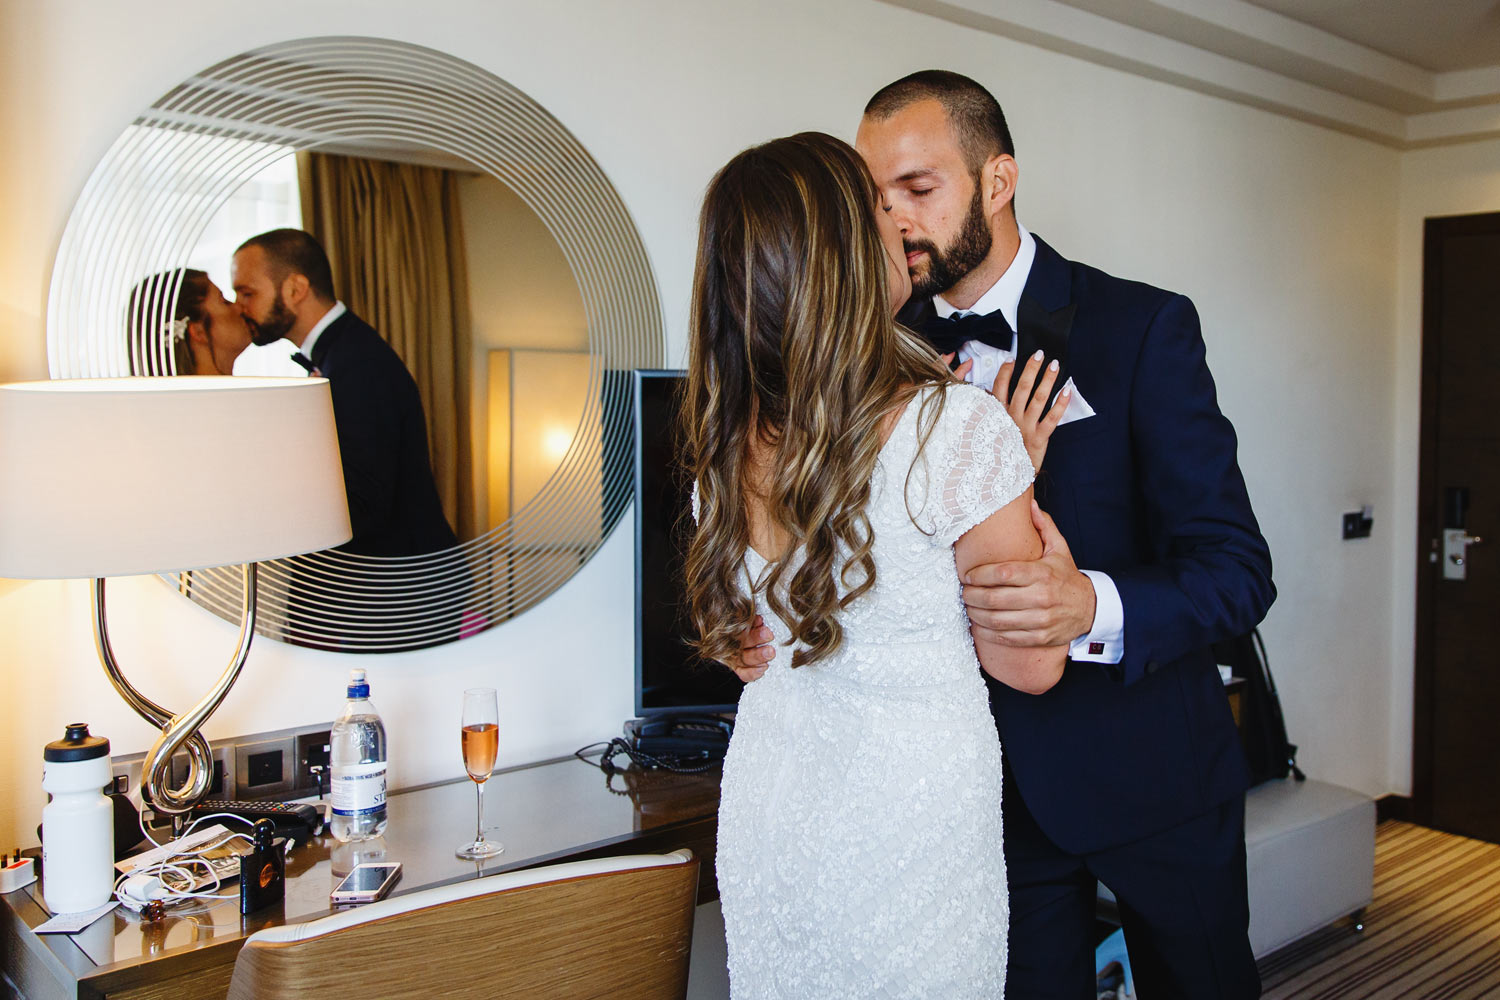 A groom sees his bride for the first time at The Marylebone Hotel - London wedding photographer